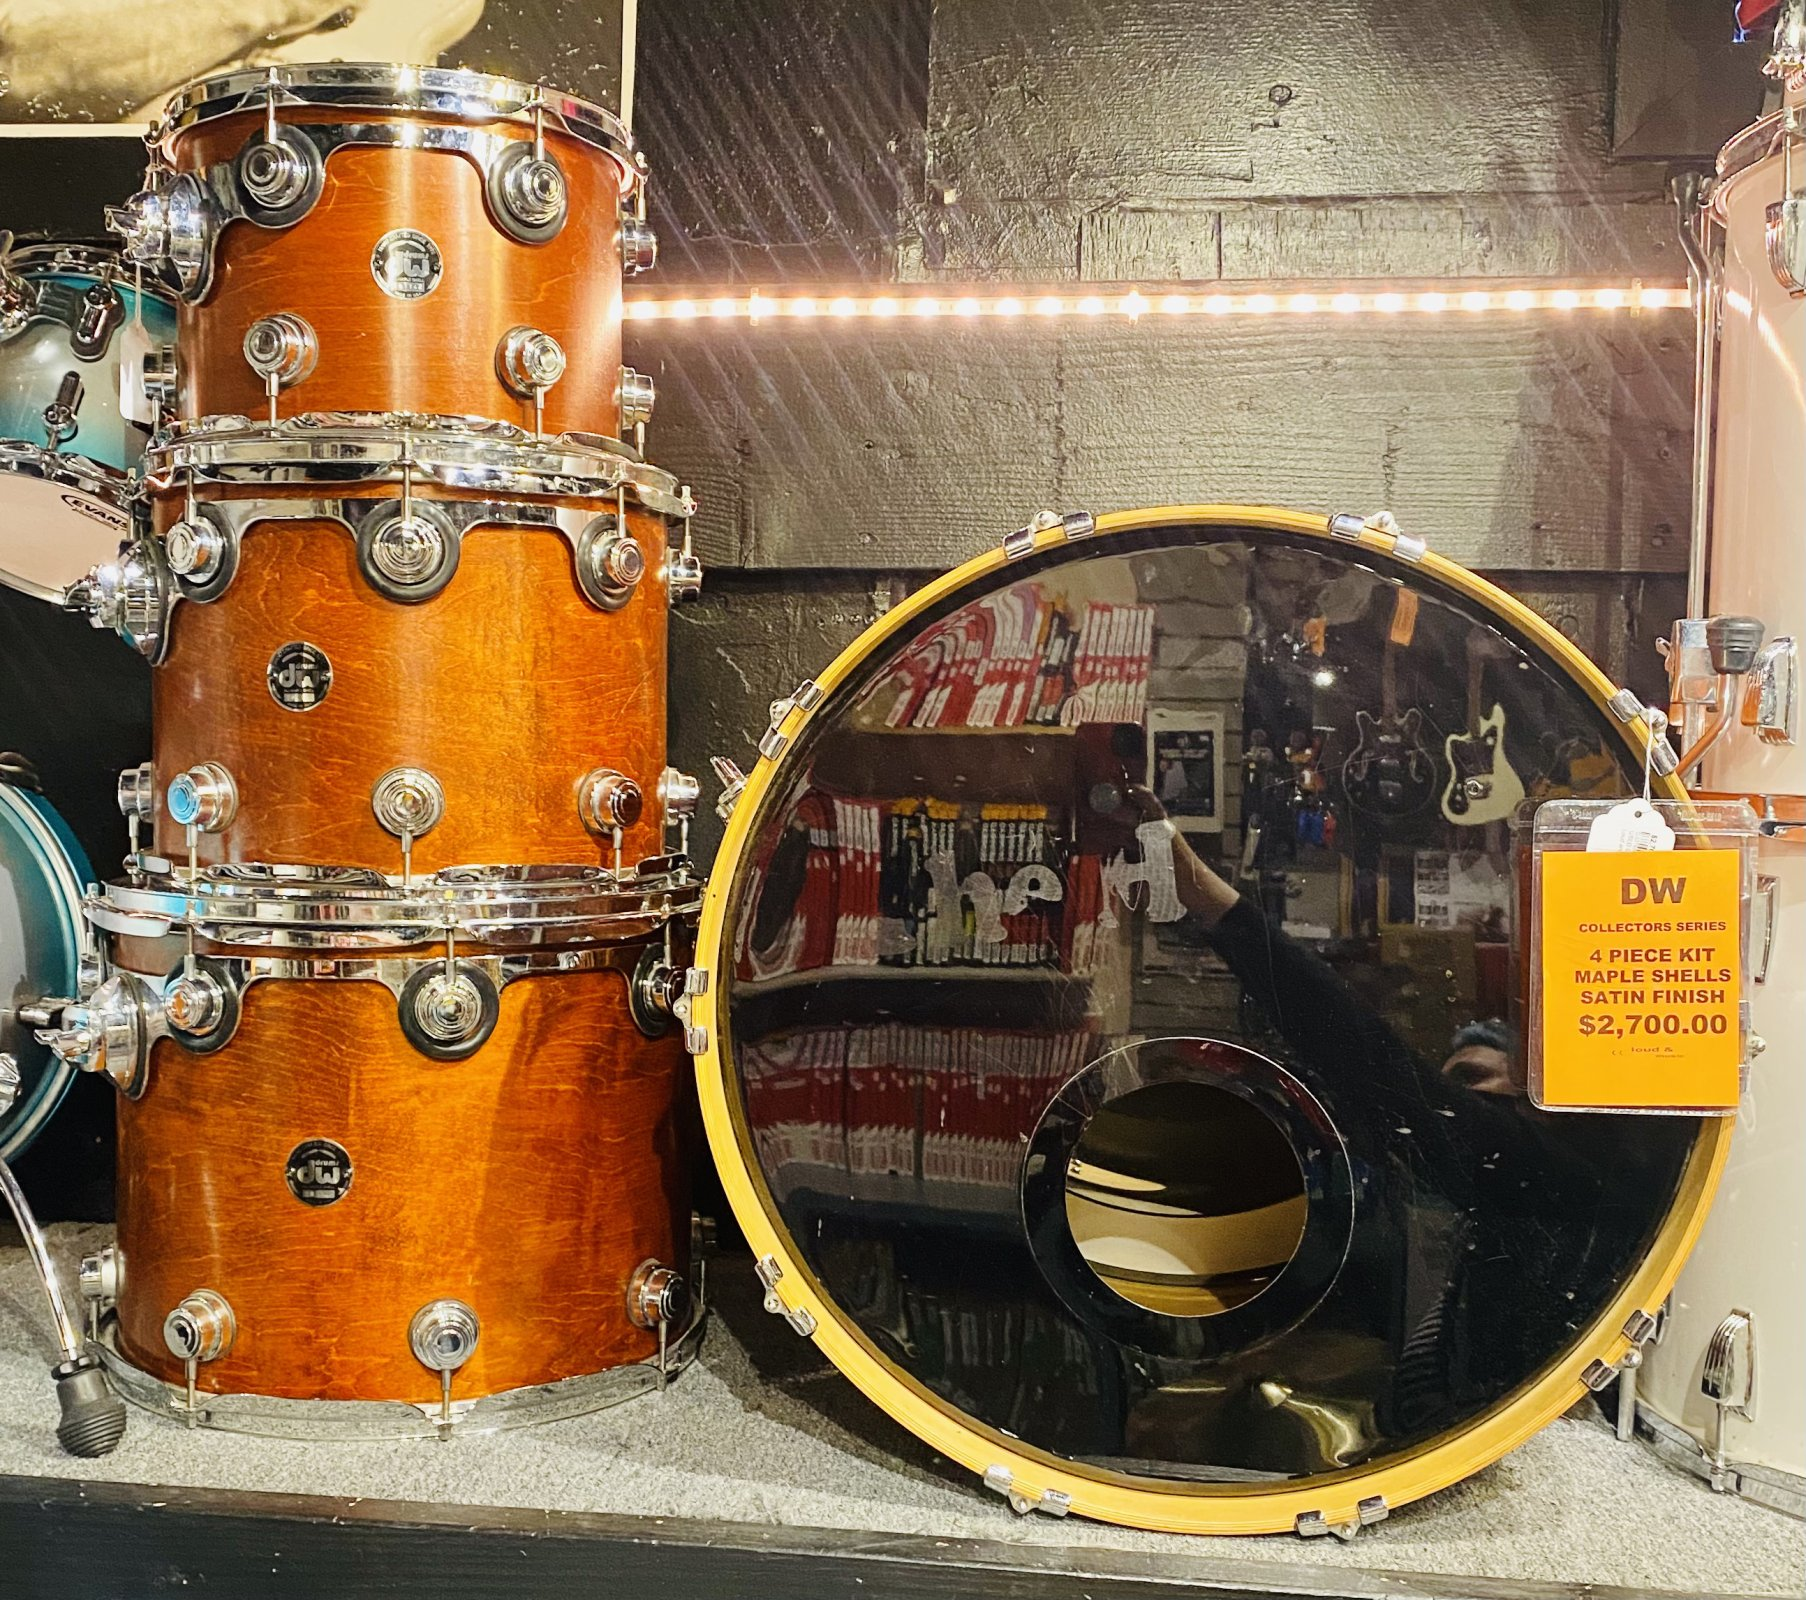 USED DW COLLECTORS SERIES DRUM KIT, 4-PIECE, MAPLE SHELLS, SATIN FINISH